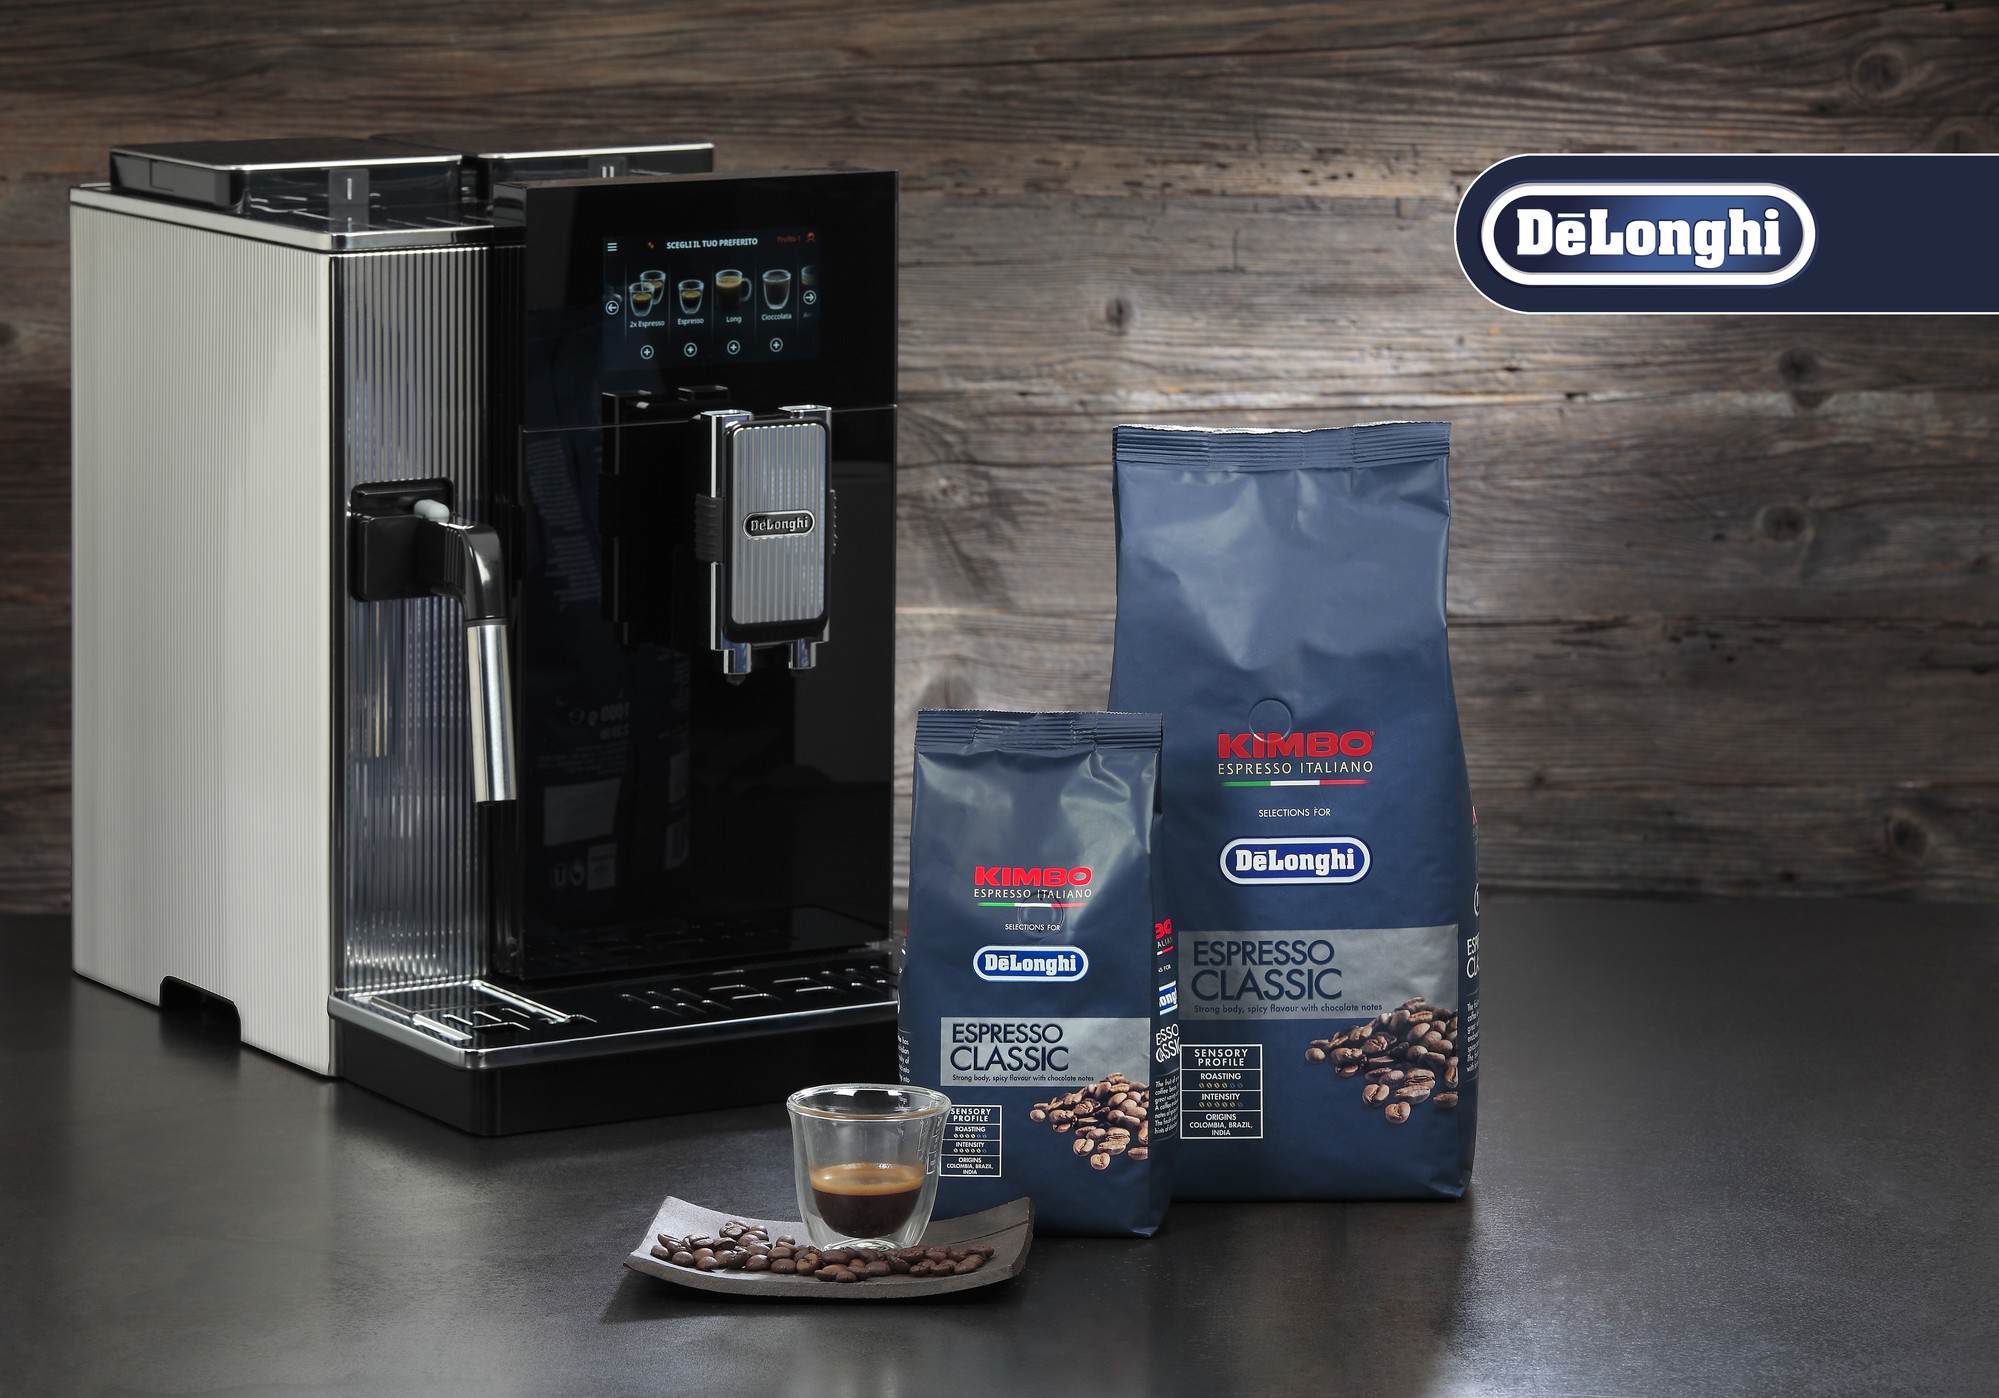 two bags of coffee beans placed in front of a coffee machine